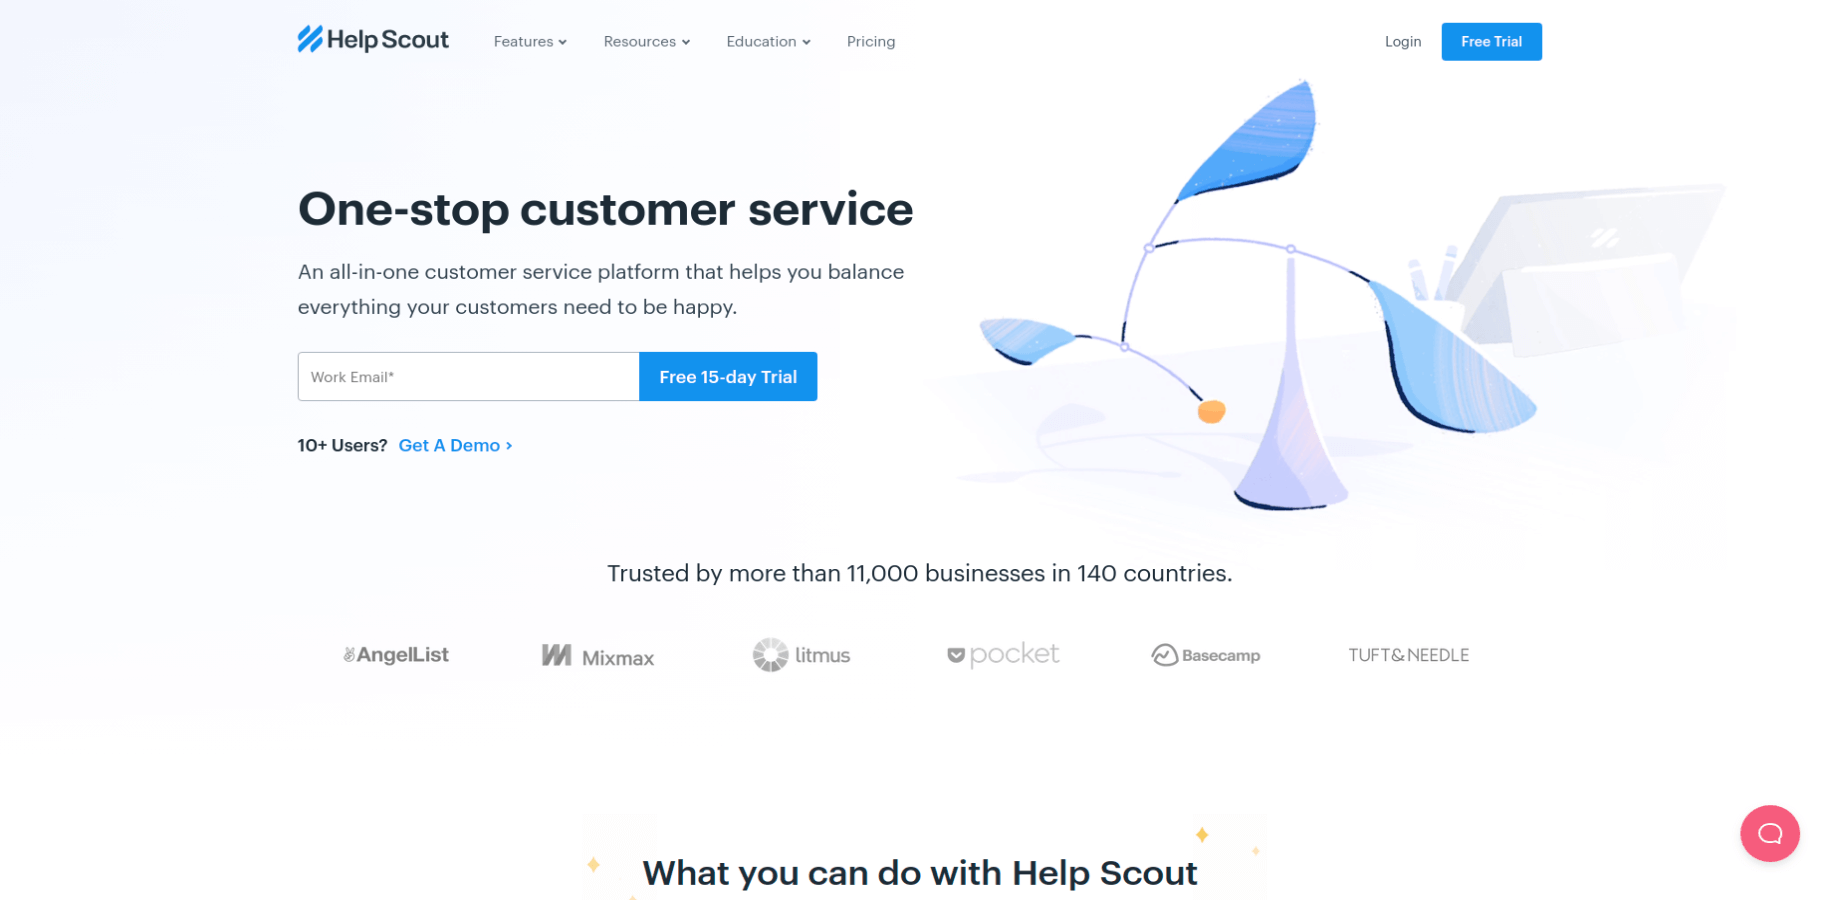 Landing Page of Help Scout